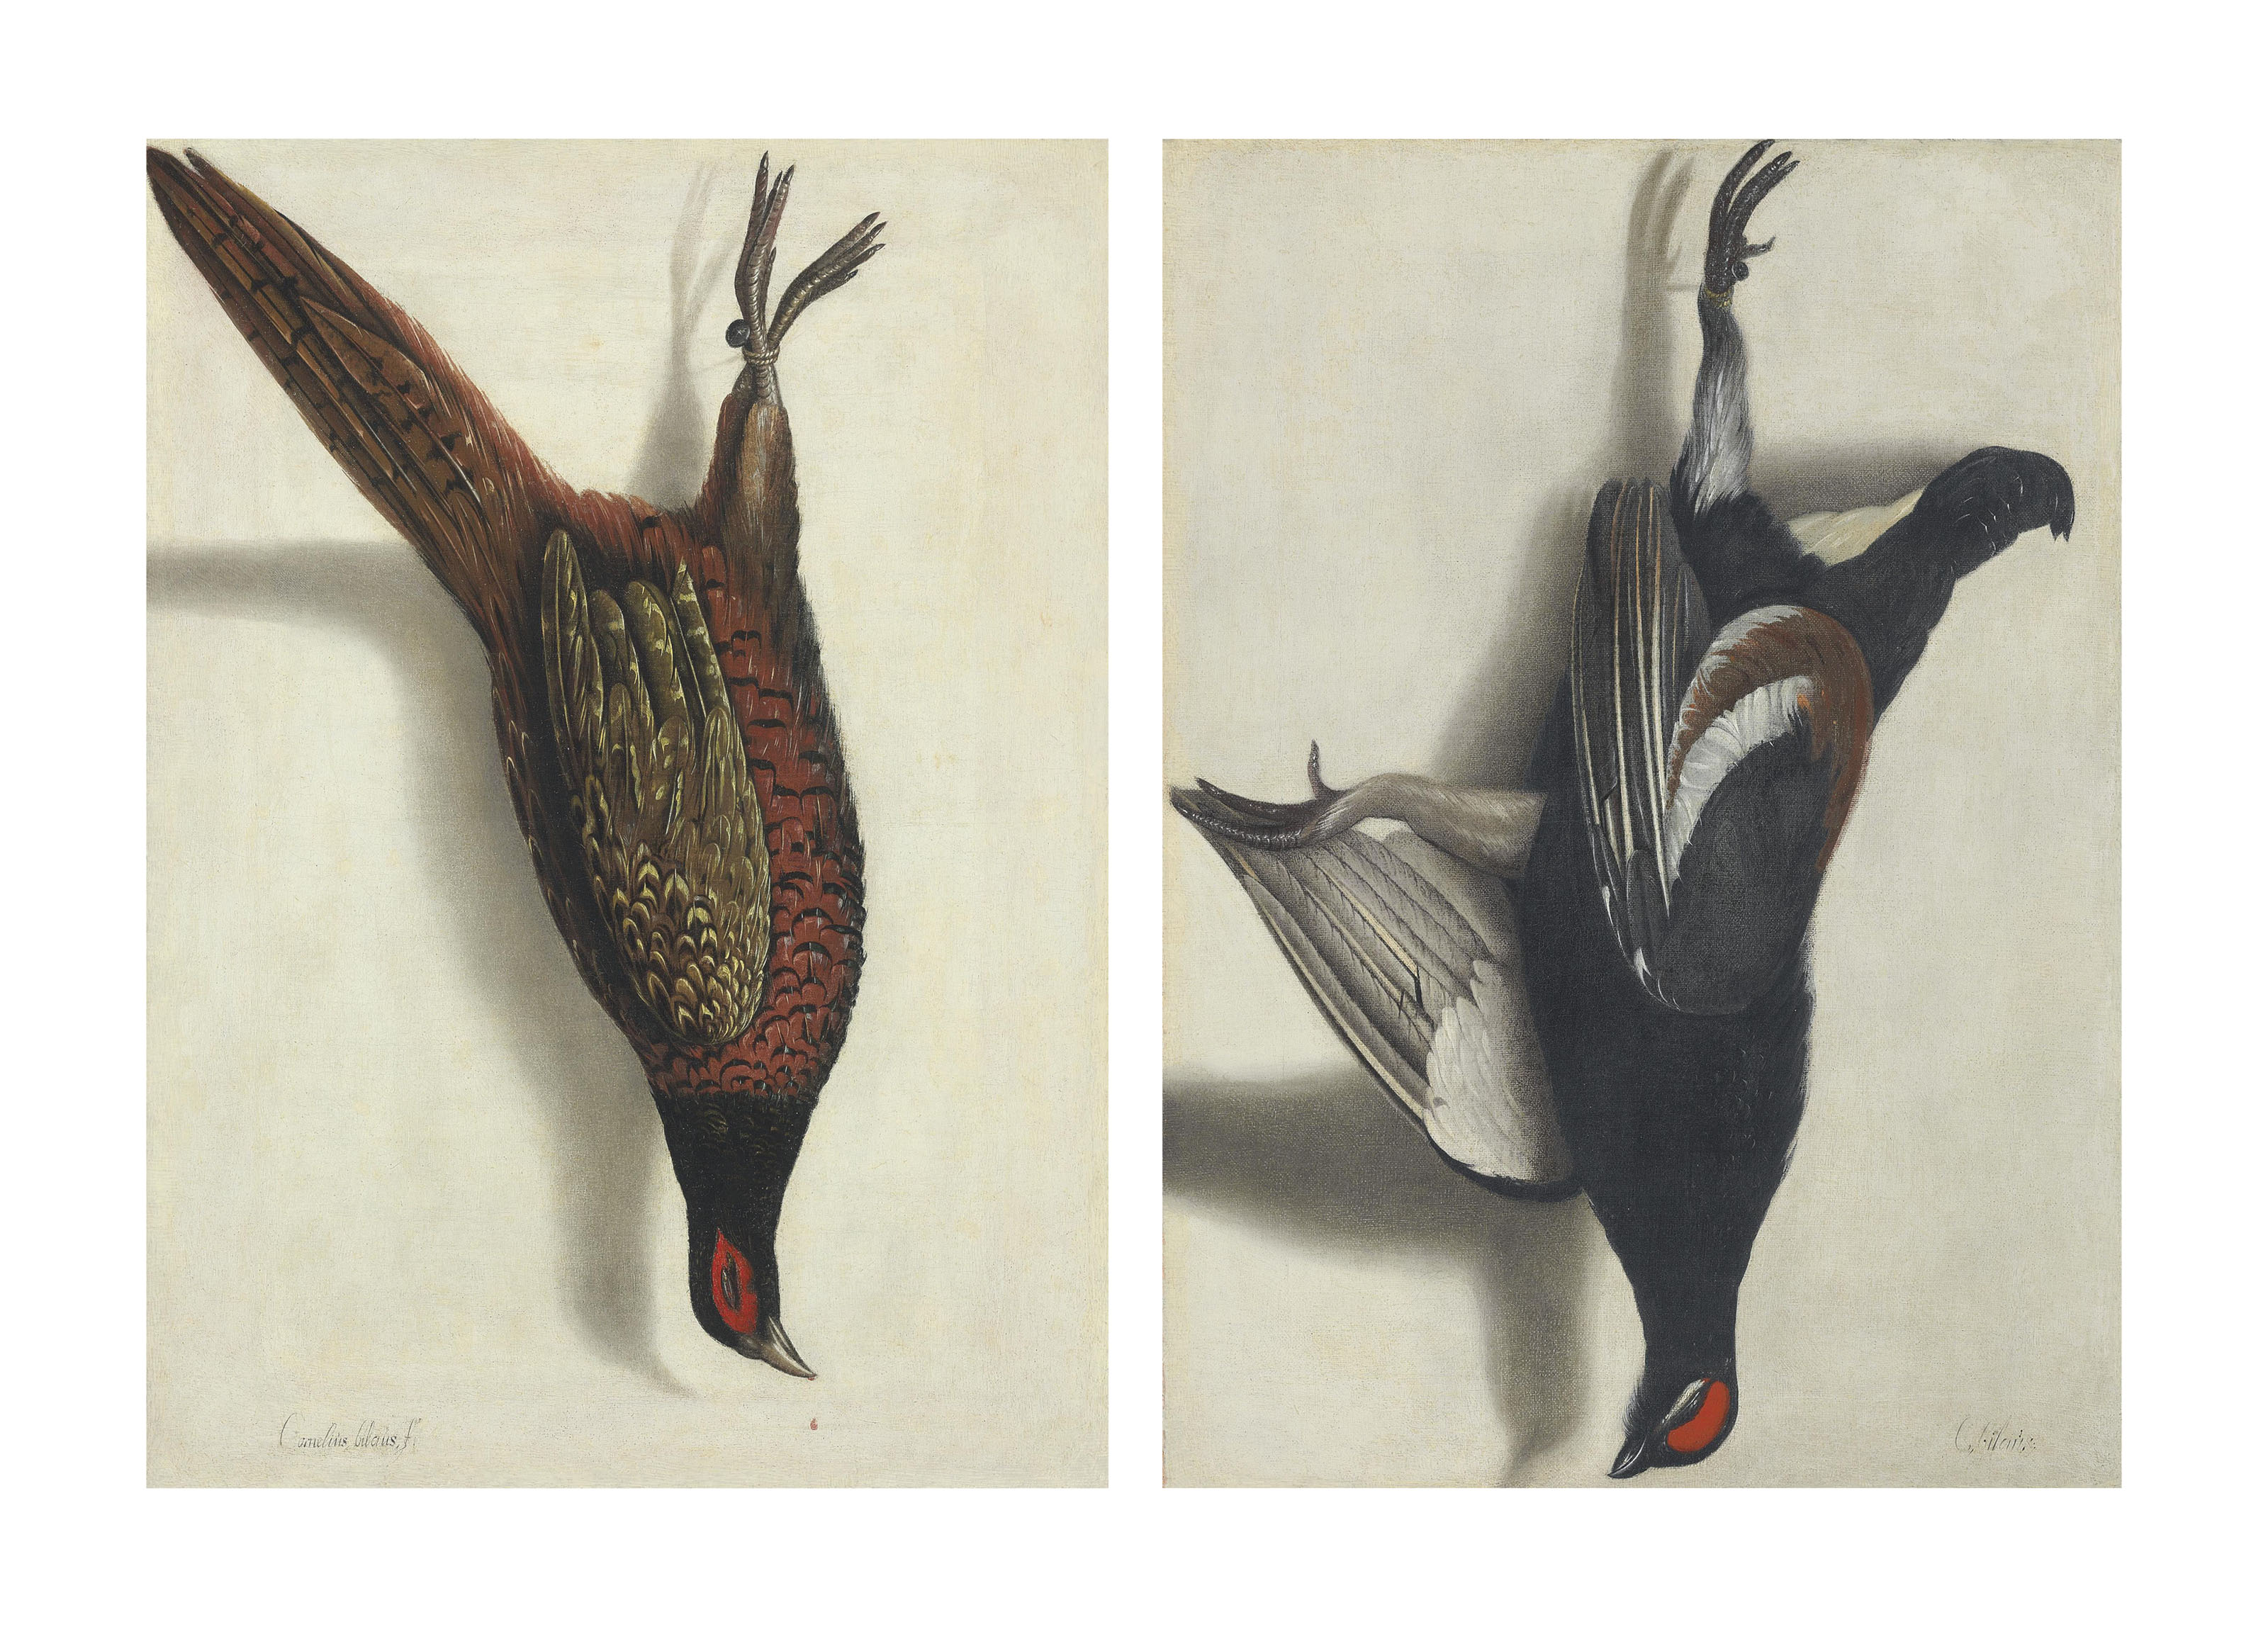 A trompe l'oeil of a hanging pheasant; and A trompe l'oeil of a hanging black grouse